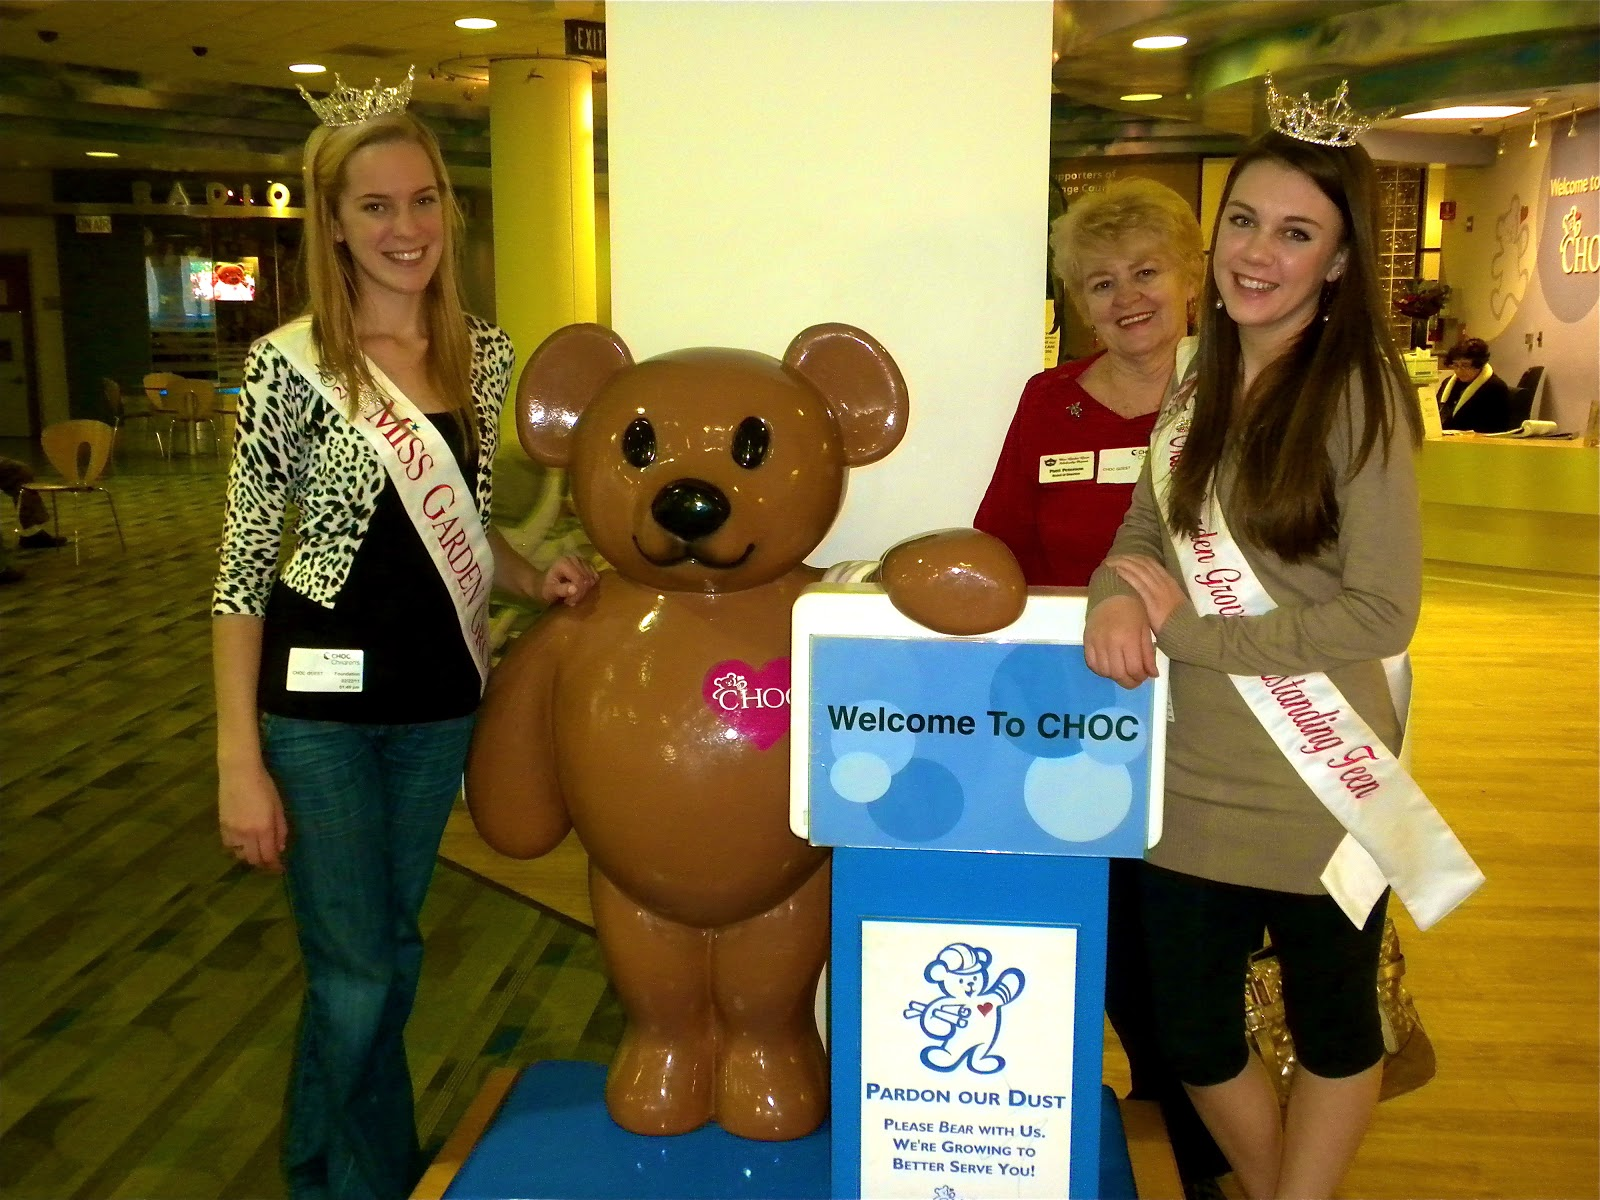 Miss Garden Grove 2011: Another Trip to CHOC Hospital